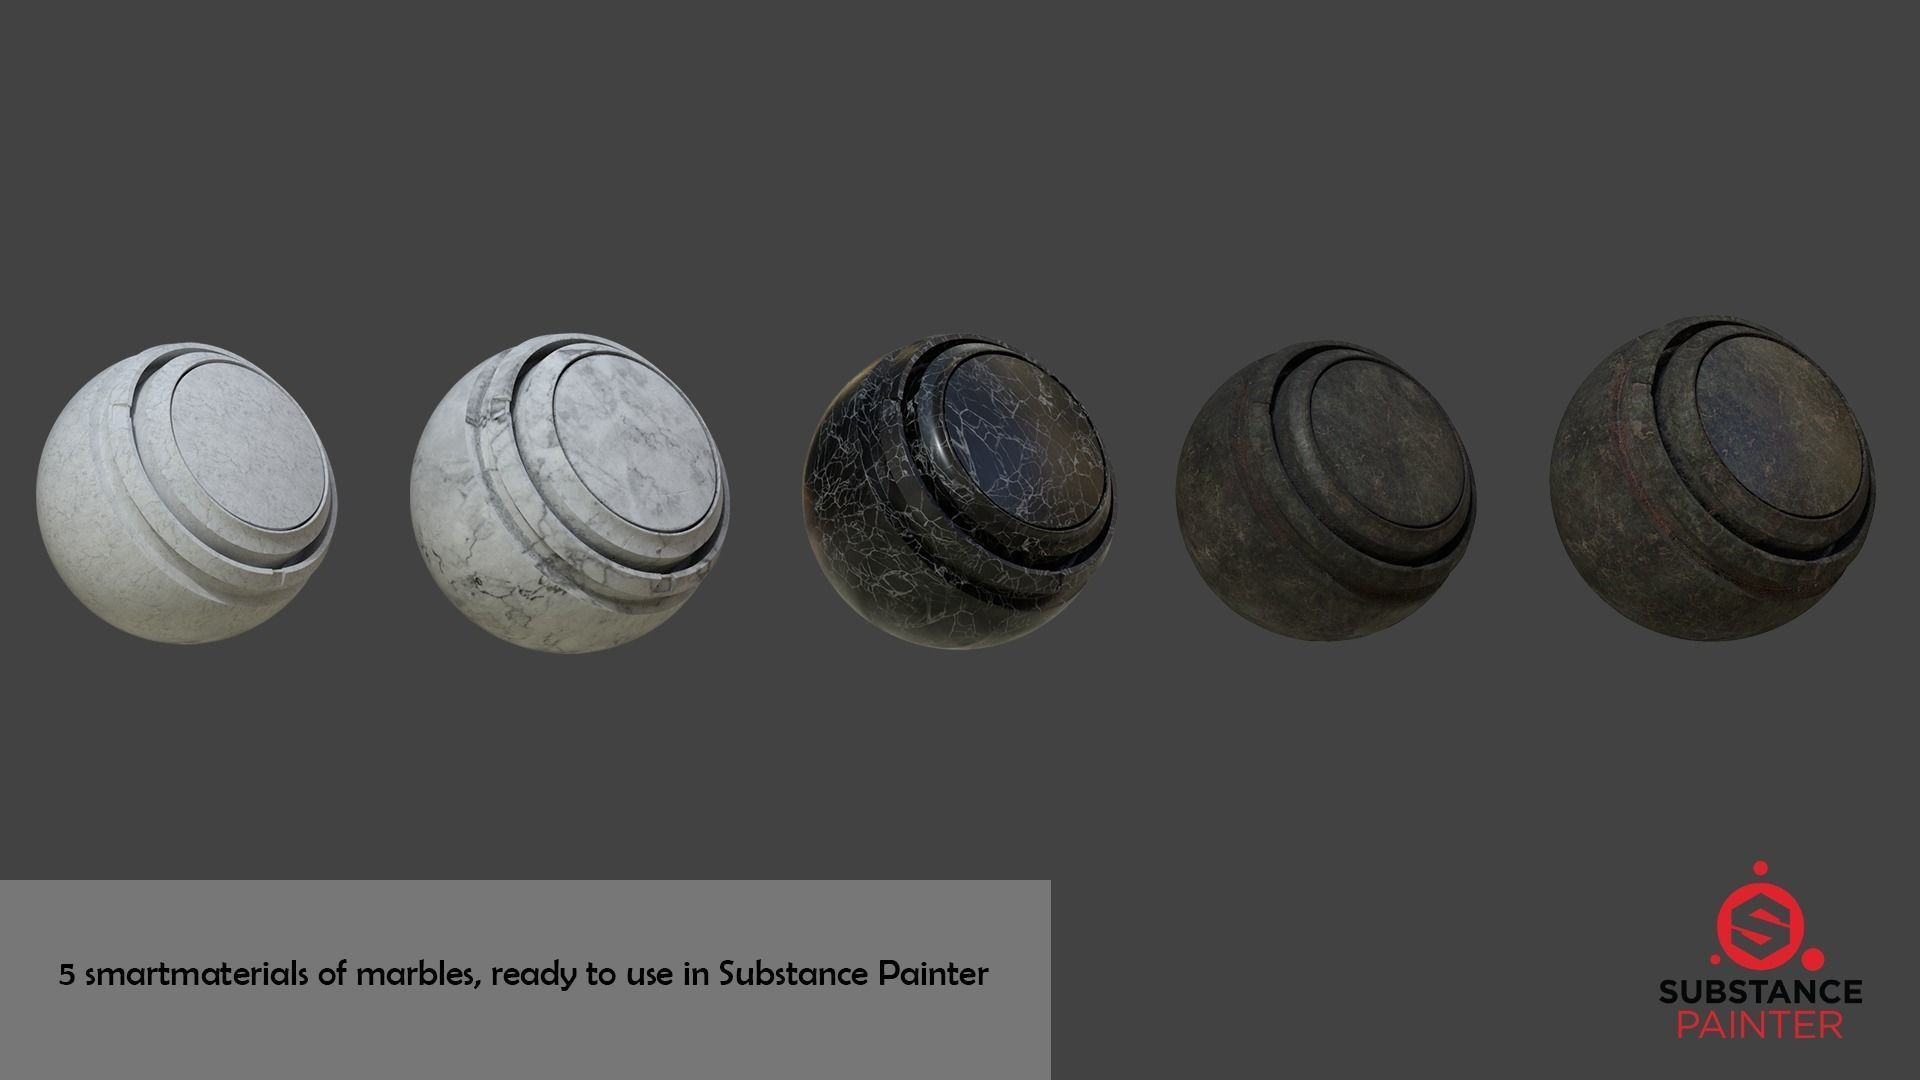 Substance Painter Smart Materials of Marbles